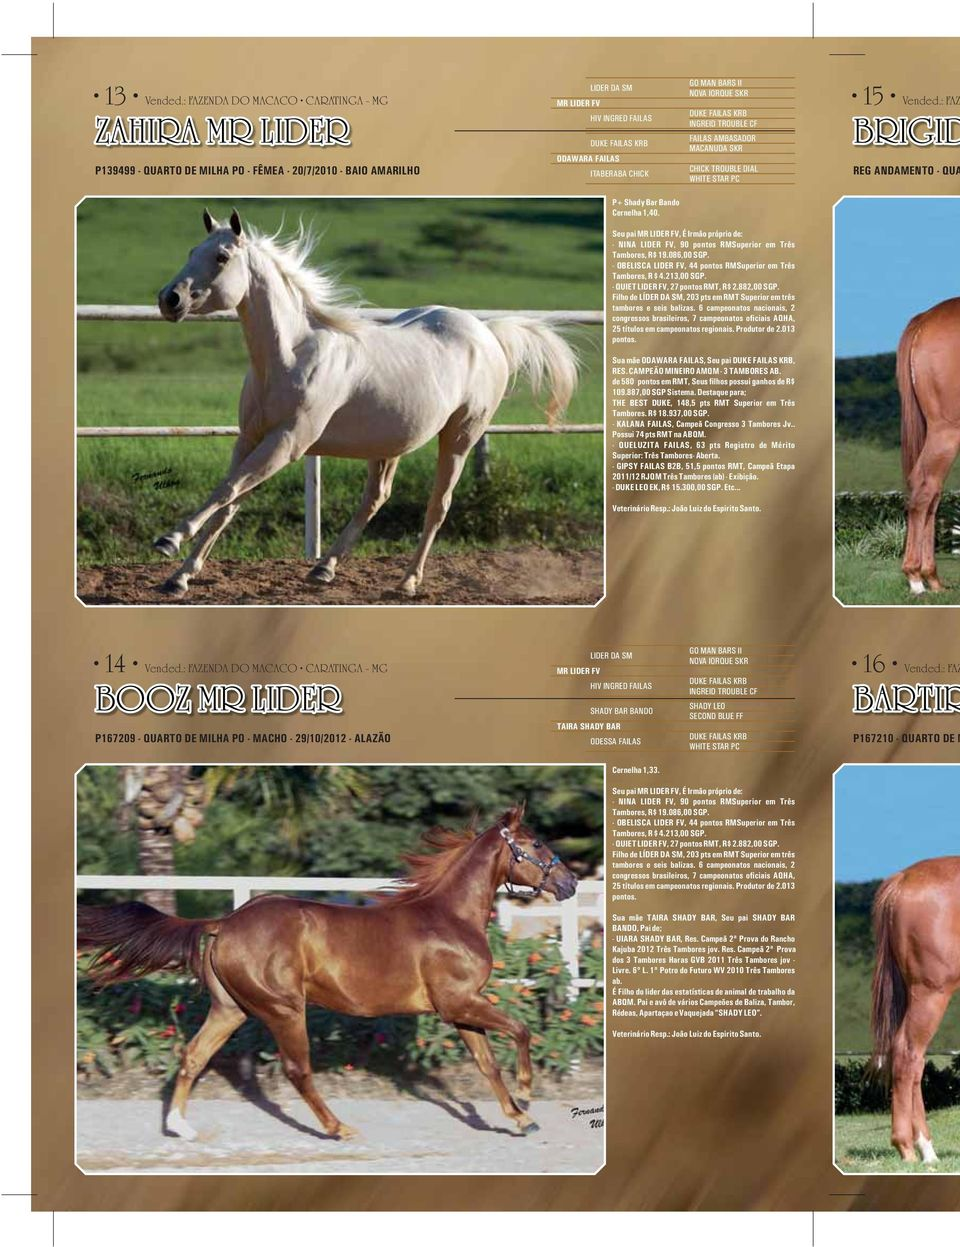 CHICK GO MAN BARS II NOVA IORQUE SKR DUKE FAILAS KRB INGREID TROUBLE CF FAILAS AMBASADOR MACANUDA SKR CHICK TROUBLE DIAL WHITE STAR PC 15 Vended.